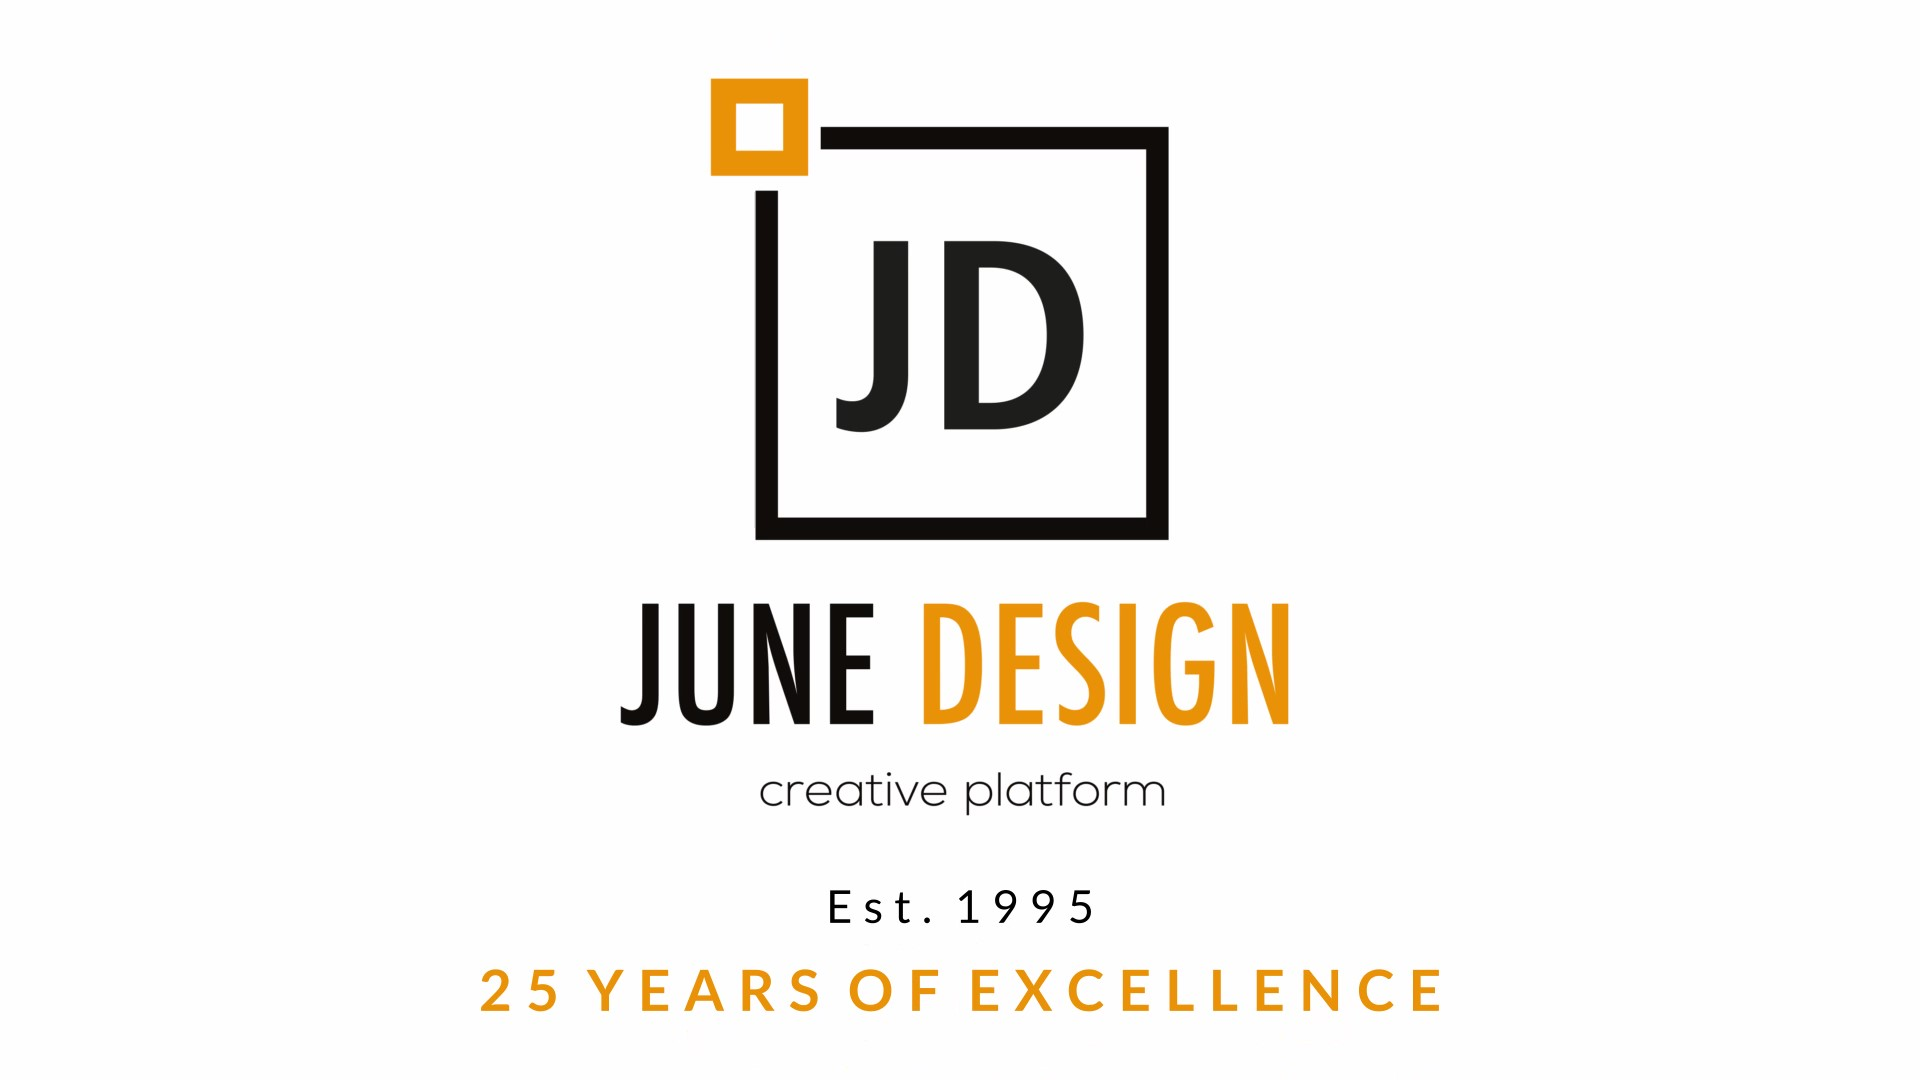 June Design with Excellence